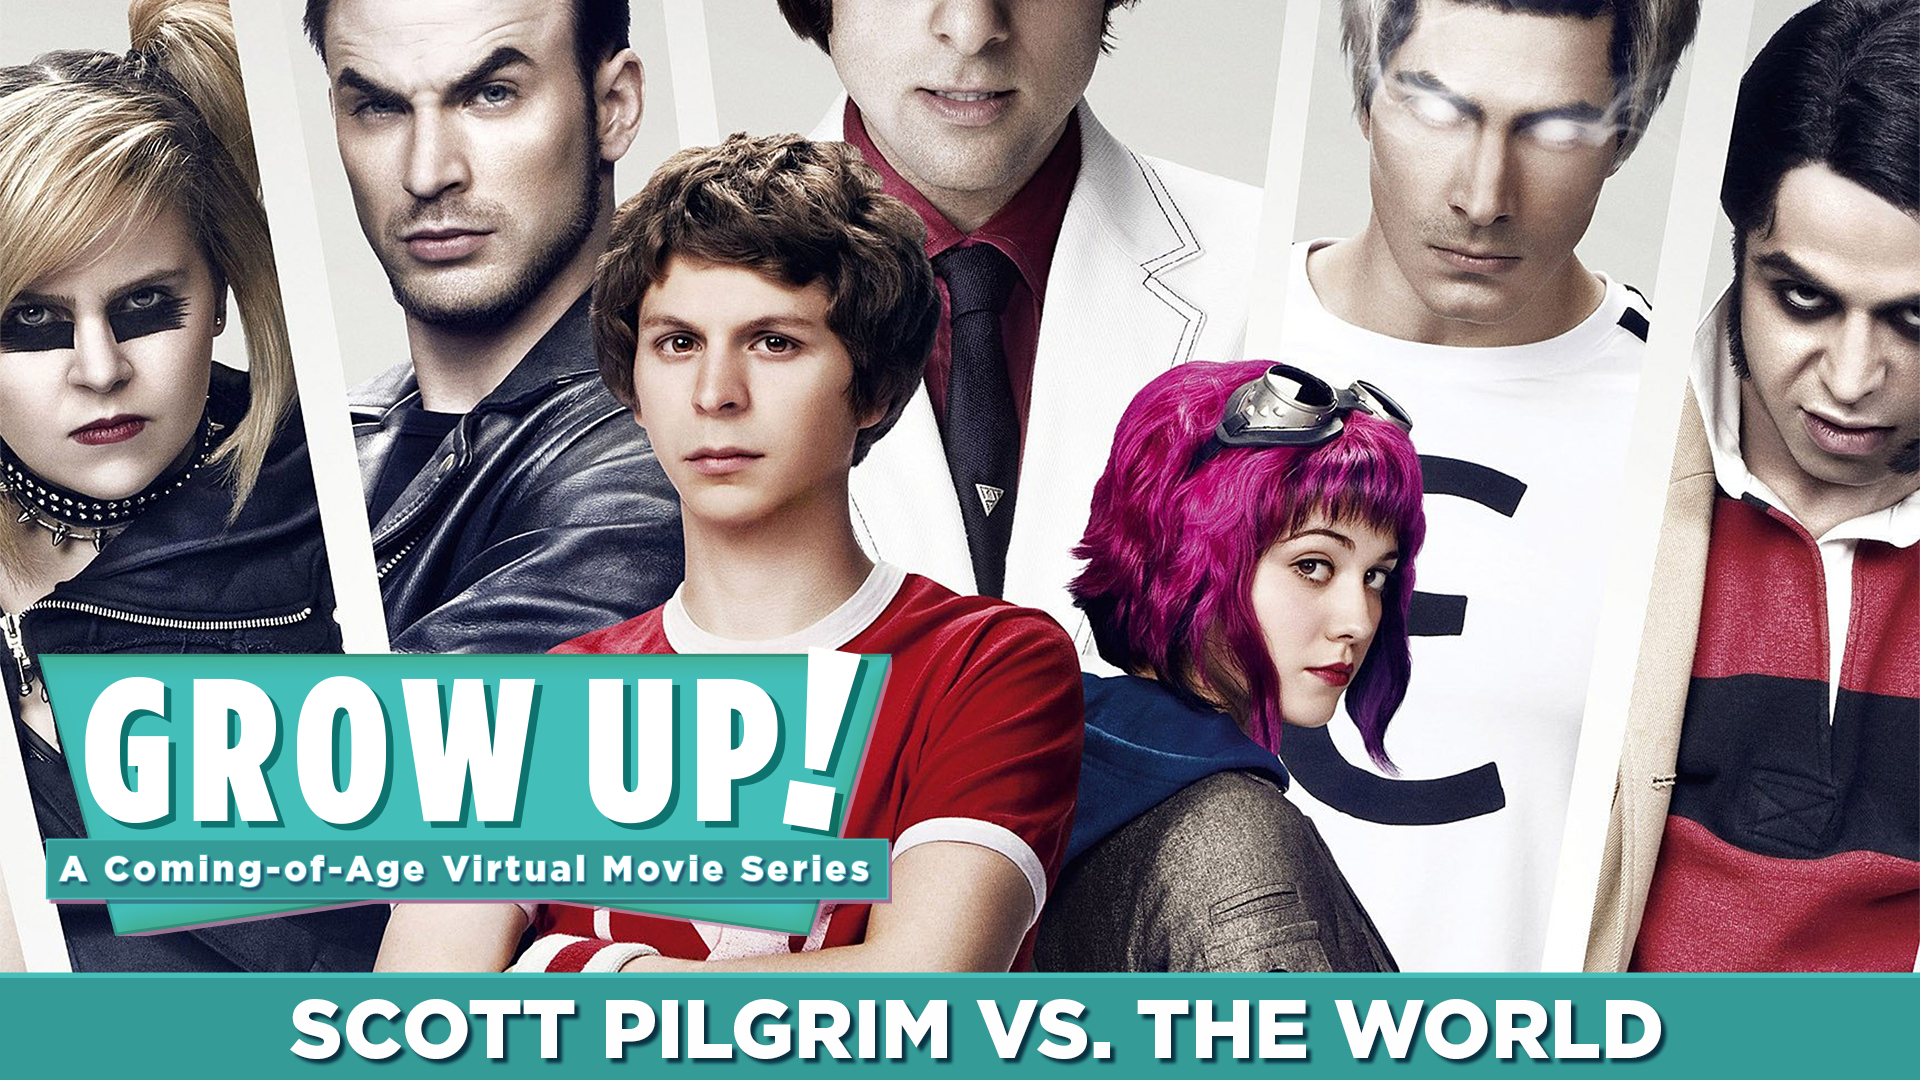 Grow Up! A Coming-of-Age Virtual Movie Series - Scott Pilgrim vs. The World